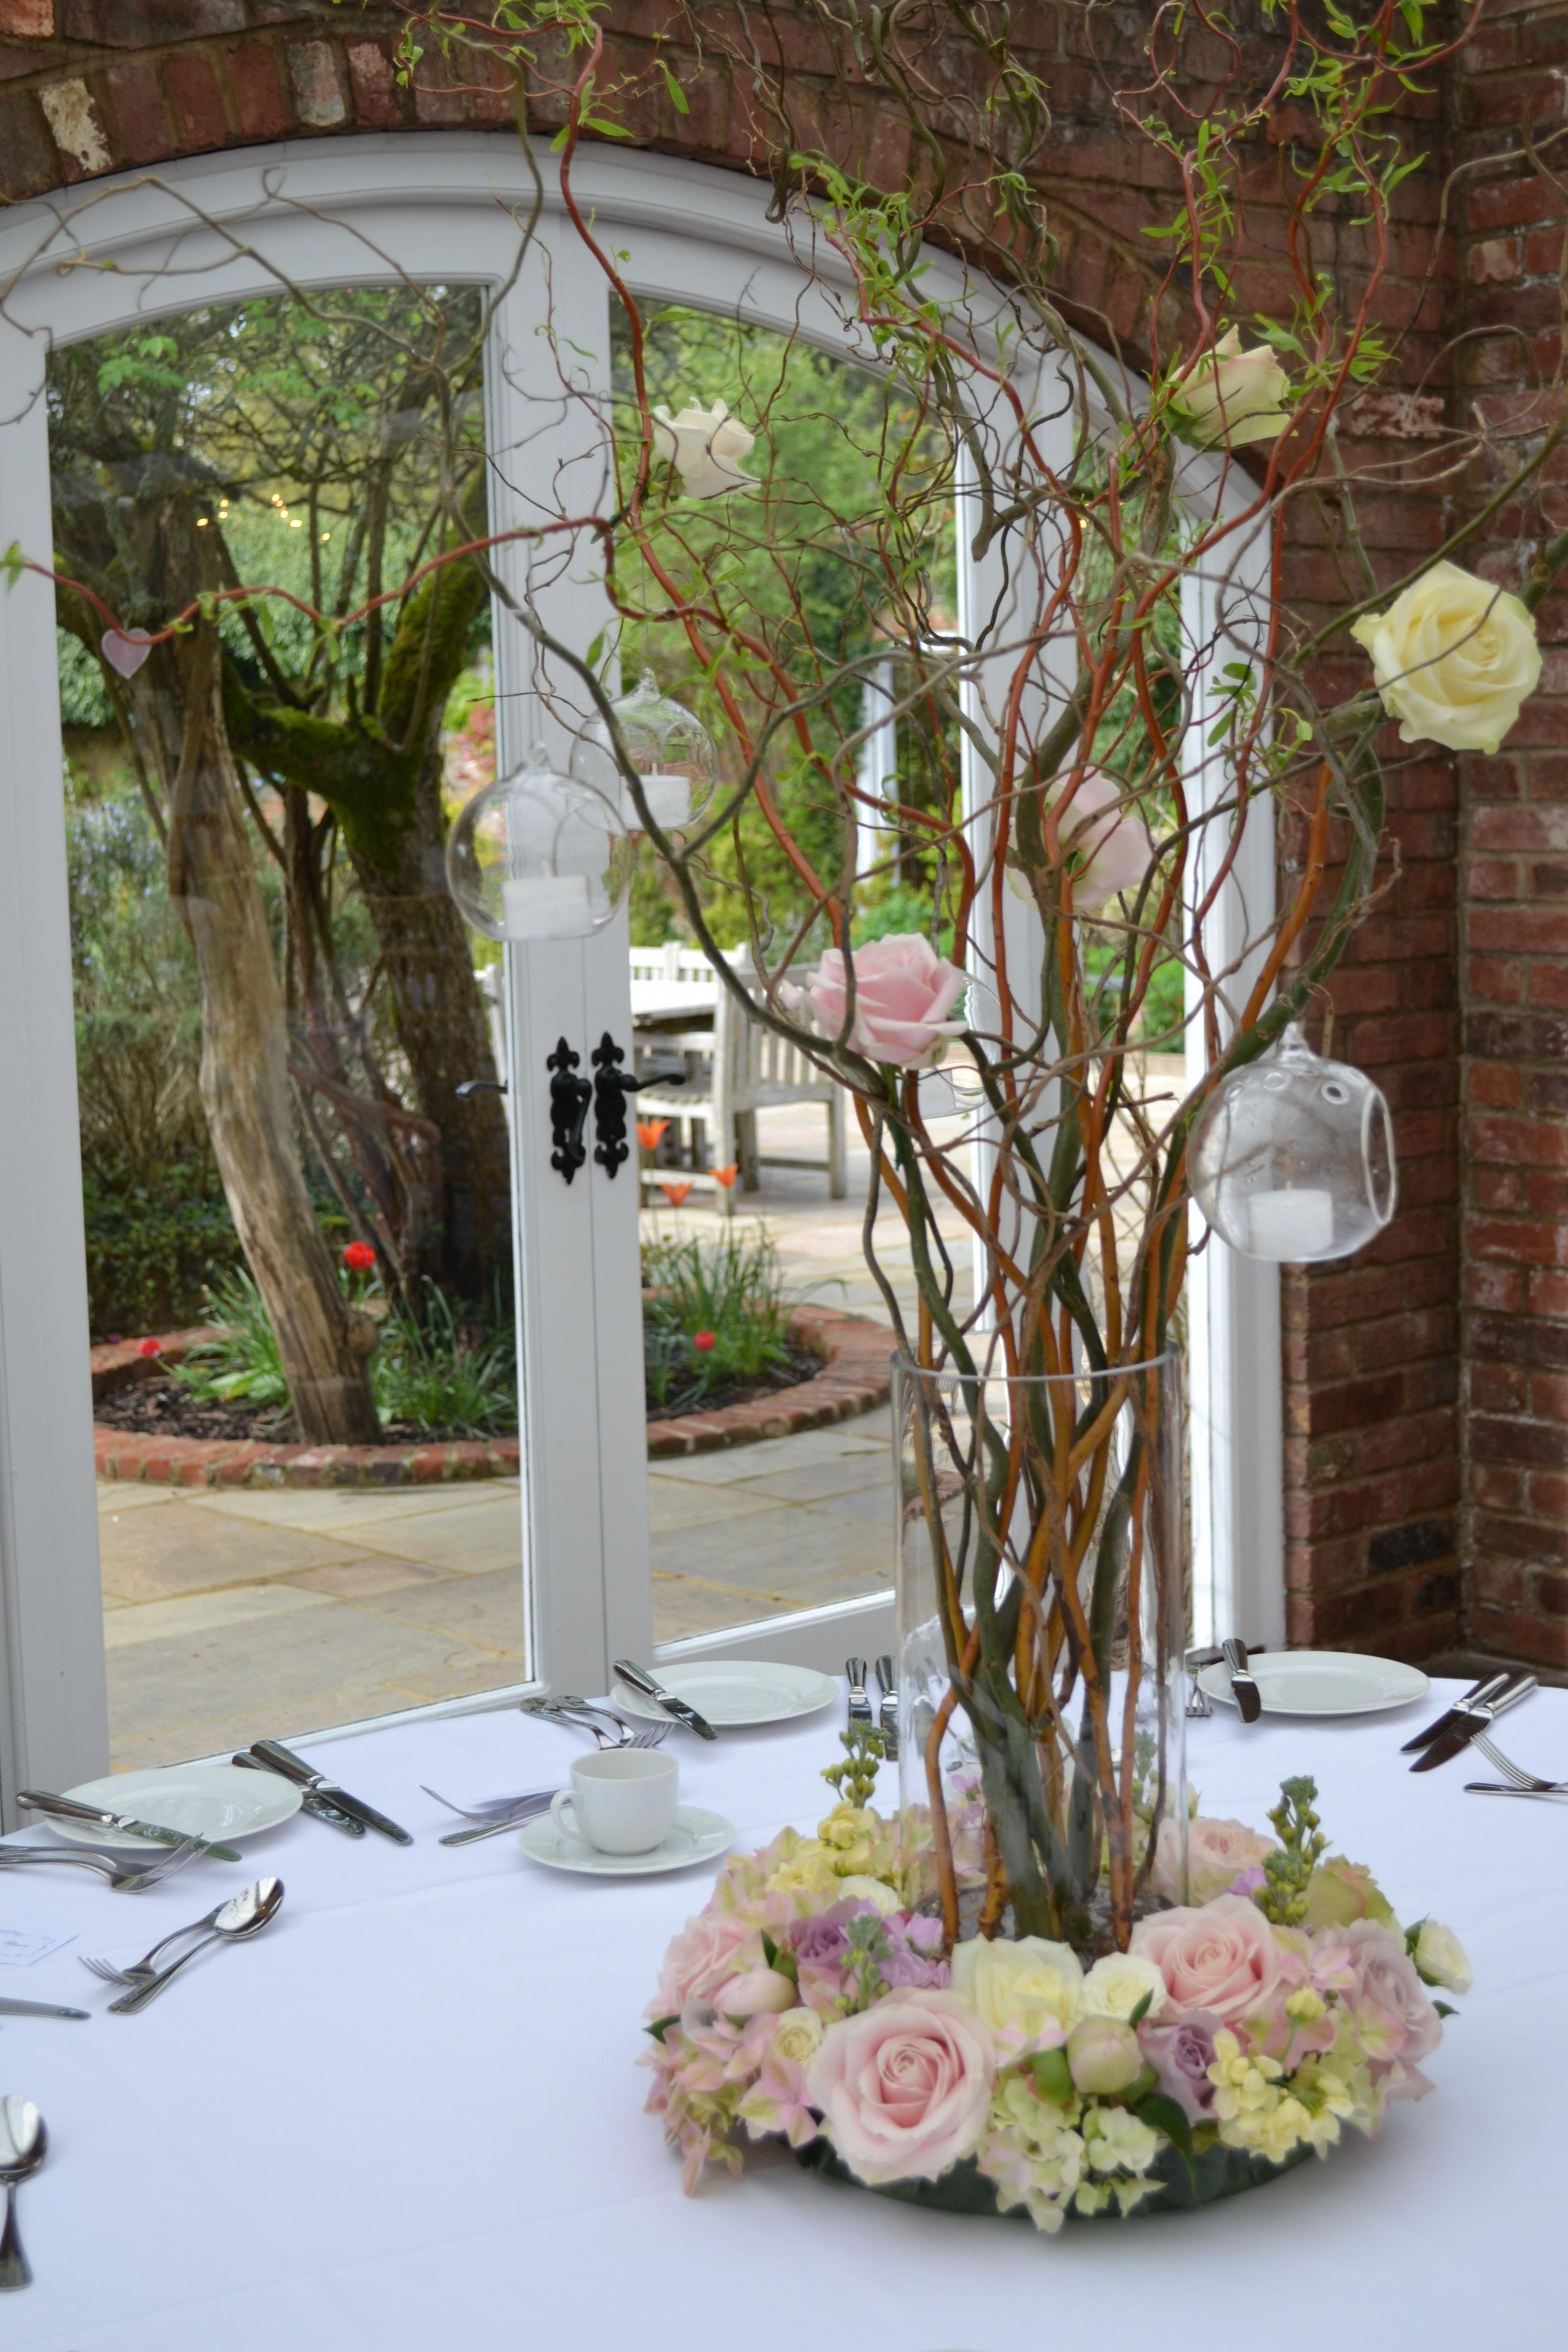 Tall Vases Containing Contorted Willow Decorated With Sweet Avalanche And Avalanche Roses And Glass Balls Containing Tea Lights Wedding Centerpieces Tall Vases Flower Arrangements